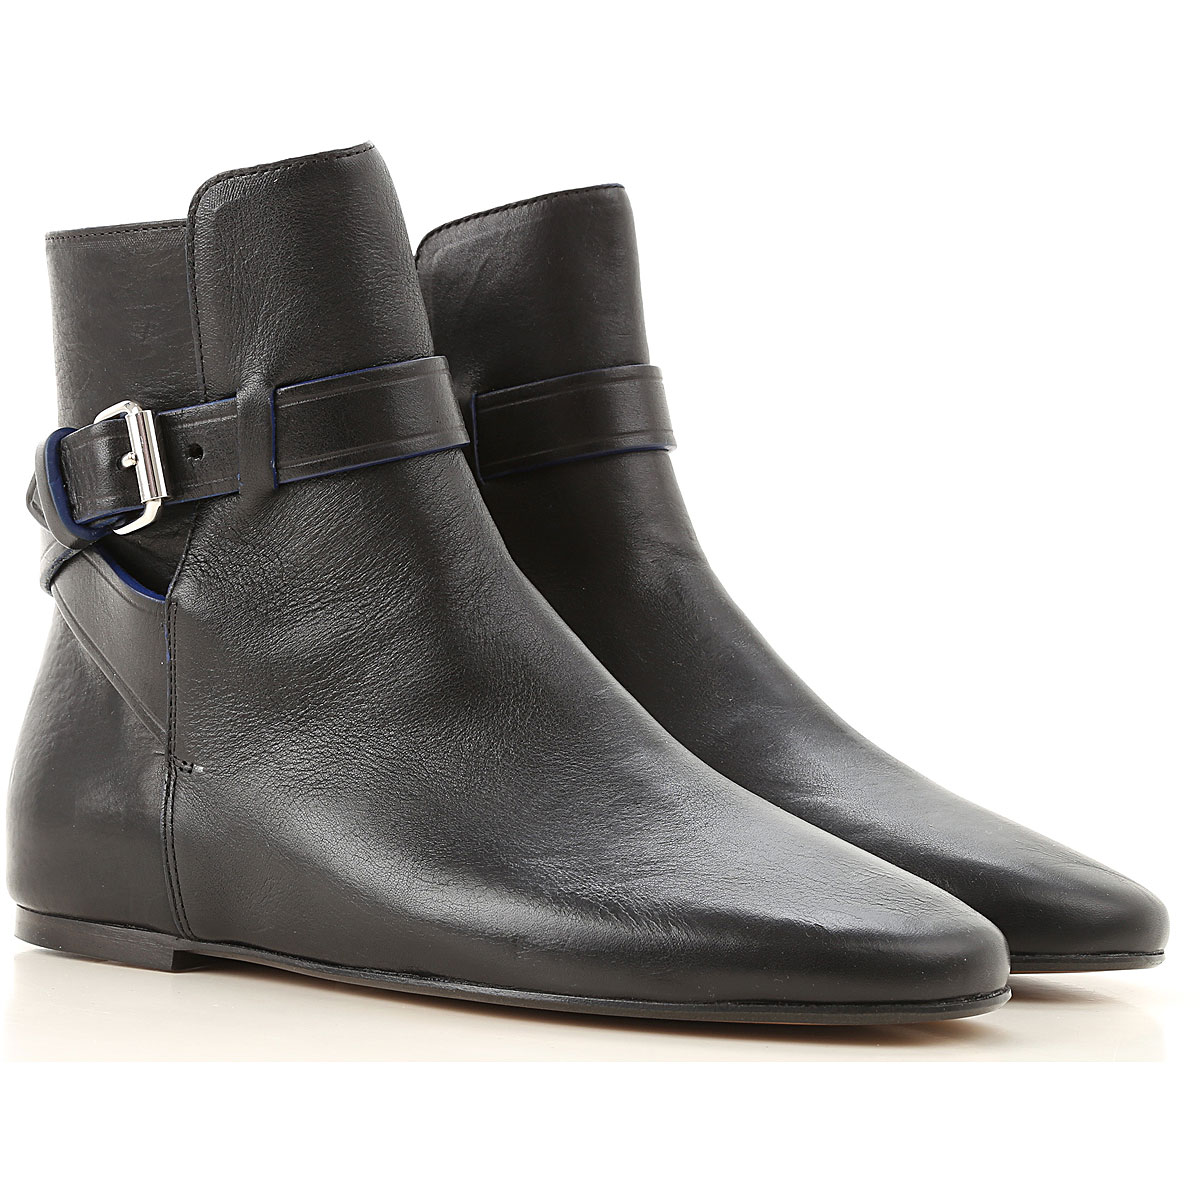 Isabel Marant Boots for Women Booties On Sale in Outlet USA - GOOFASH